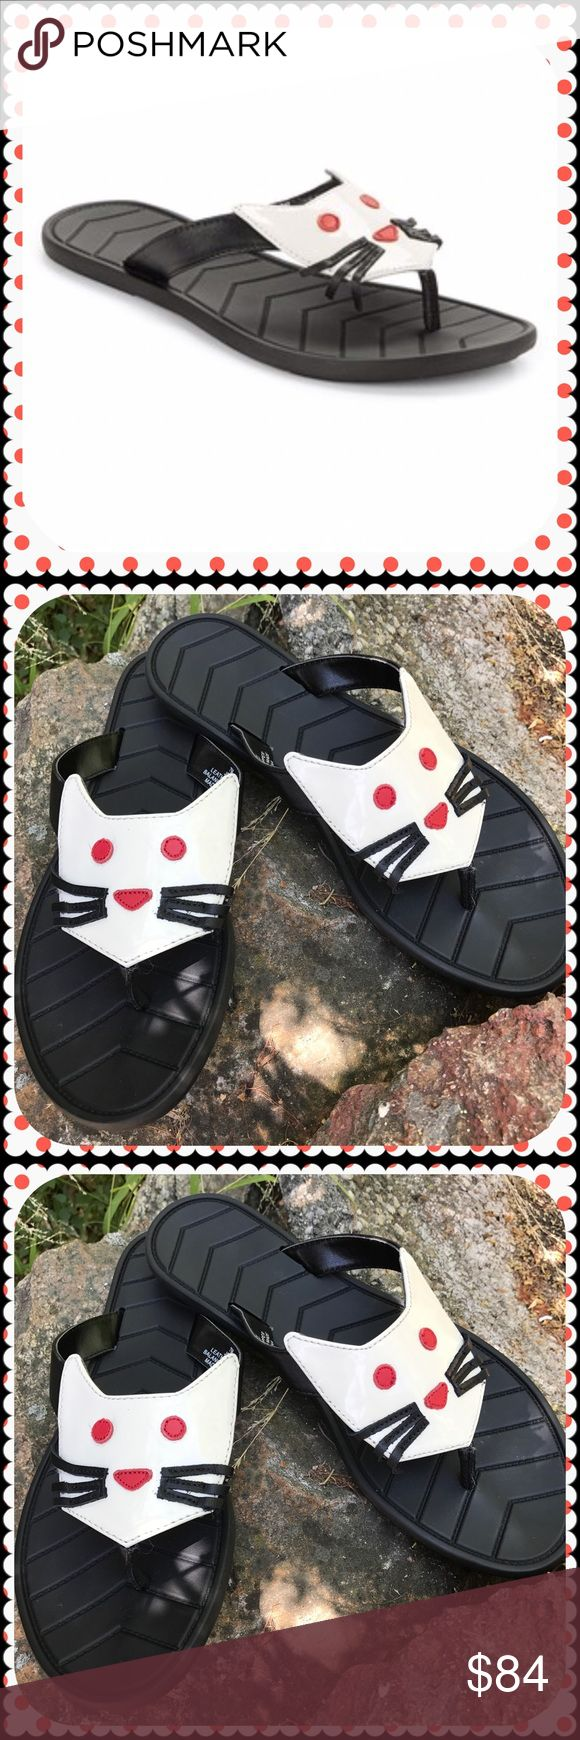 Karl Lagerfeld patent leather flip flops New in box! Karl Lagerfeld Paris Jouy patent leather kitty cat sandals. Leather upper. Synthetic lining and sole. Sold out everywhere! 😻 Size 7. Heel to toe length measures 10 inches. Cat face is cream white color, not pure white. Karl Lagerfeld Shoes Sandals